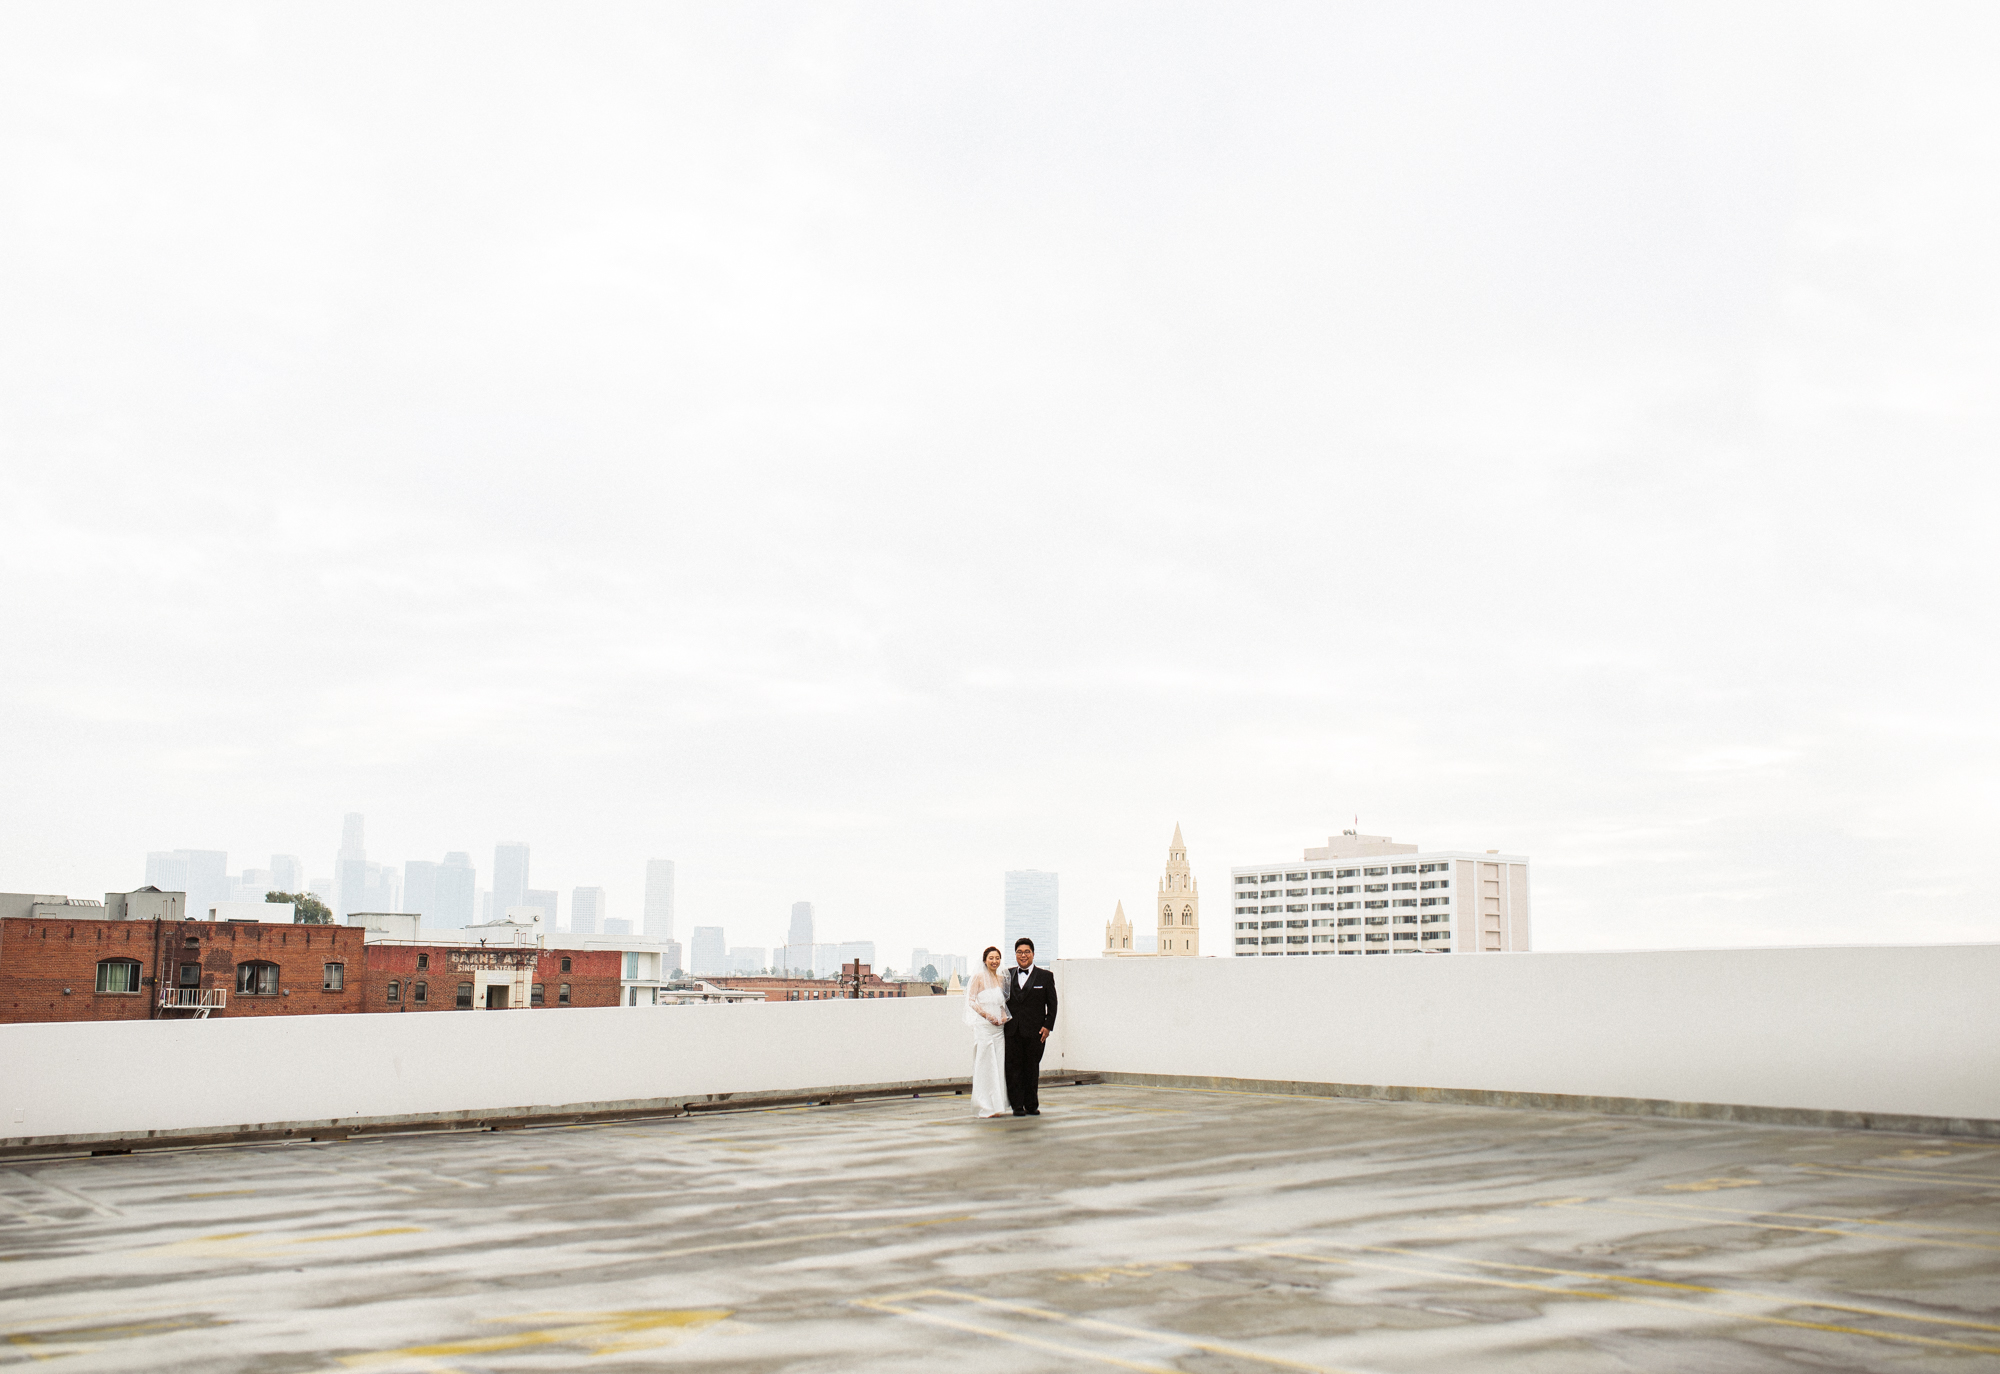 ©Isaiah & Taylor Photography - Destination Wedding Photographers - Downtown Los Angeles Parking Lot Rooftop Wedding-017.jpg